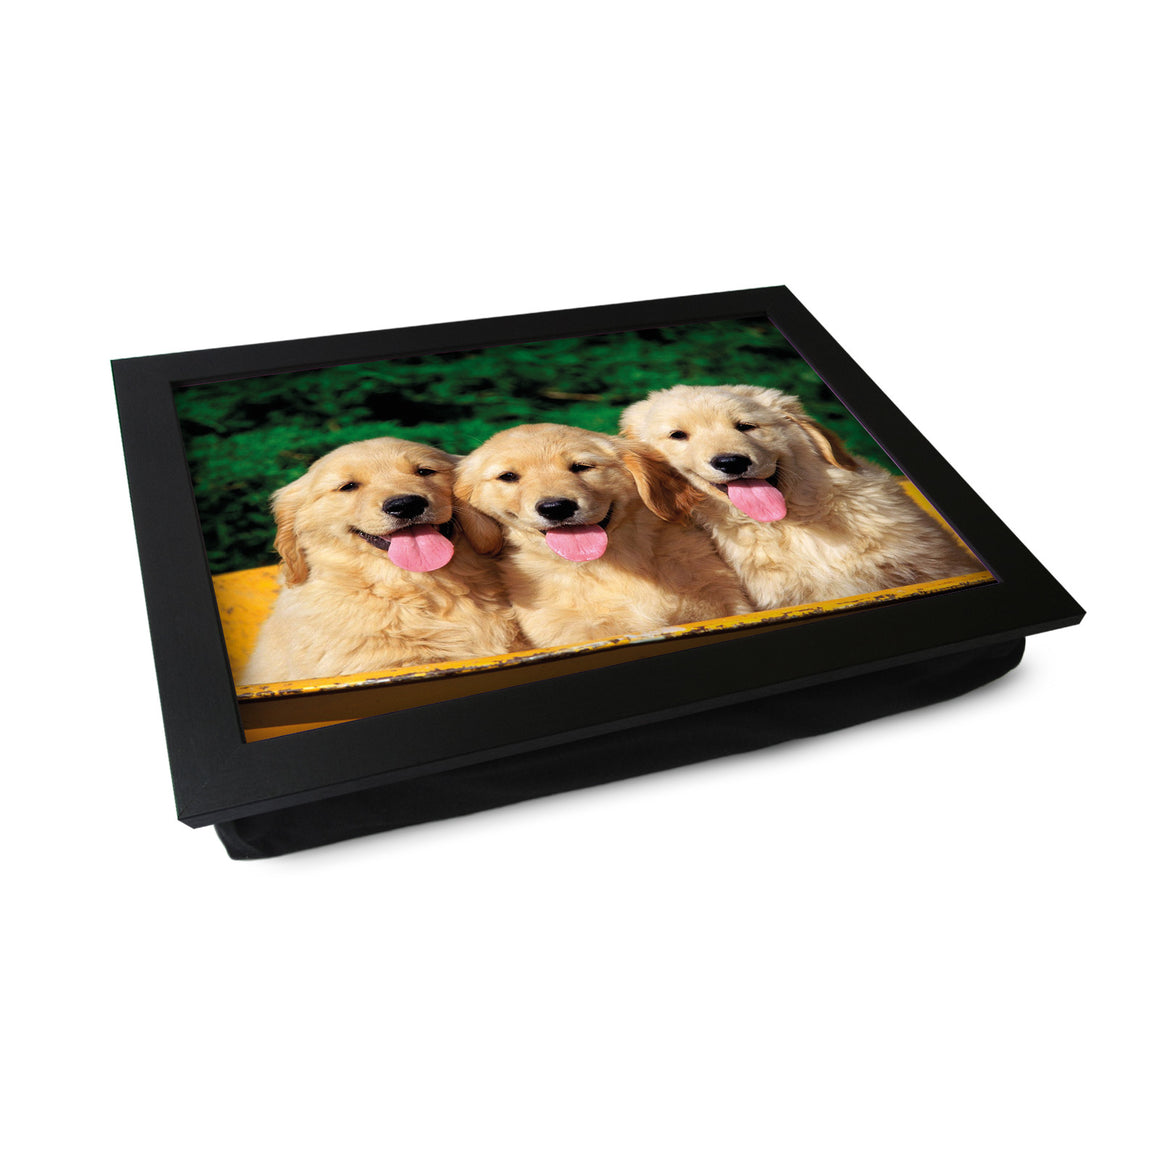 Three Golden Retriever Puppies In A Tub Lap Tray - L0397